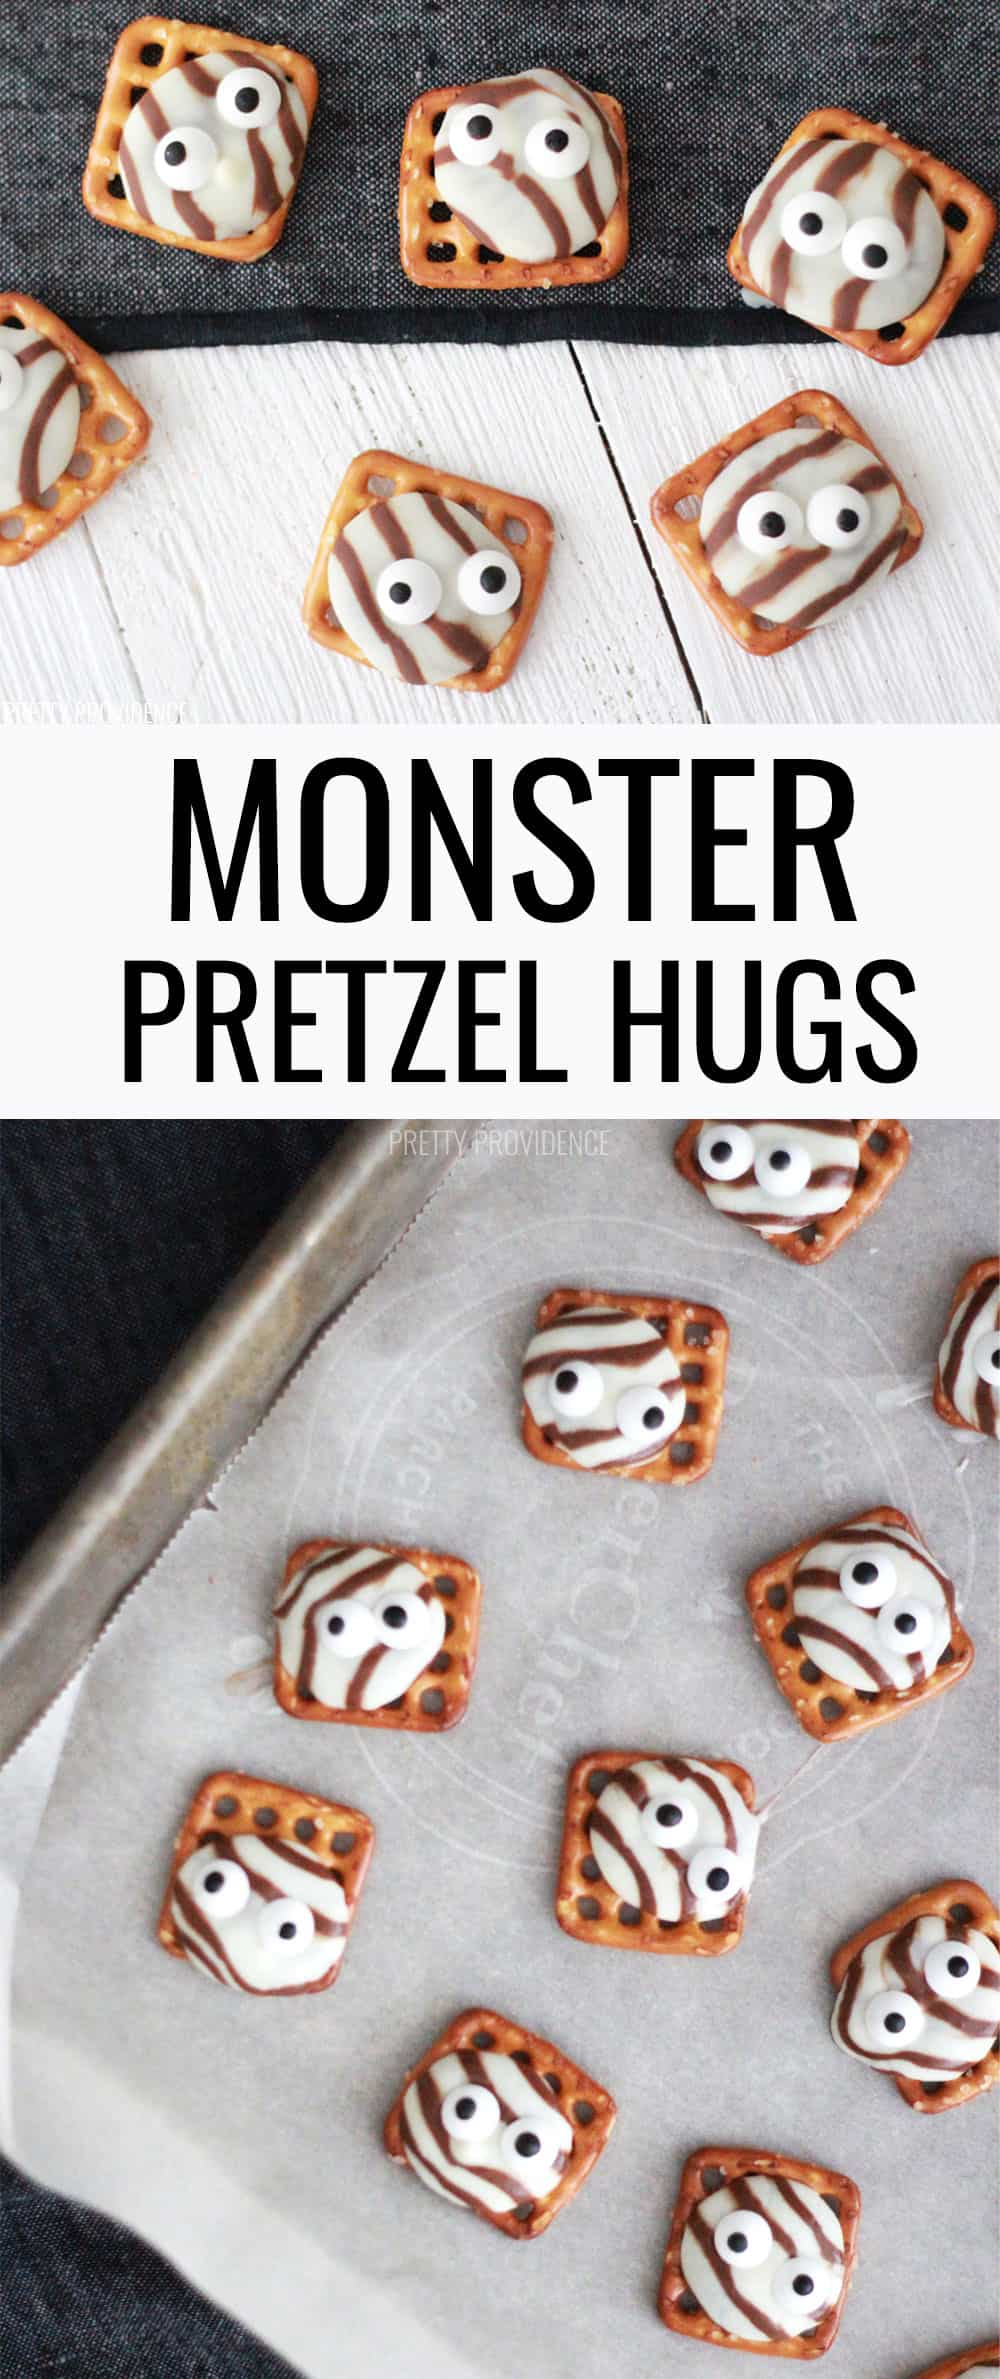 These fun Monster Pretzel Hugs with candy eyeballs are the perfect Halloween treat!